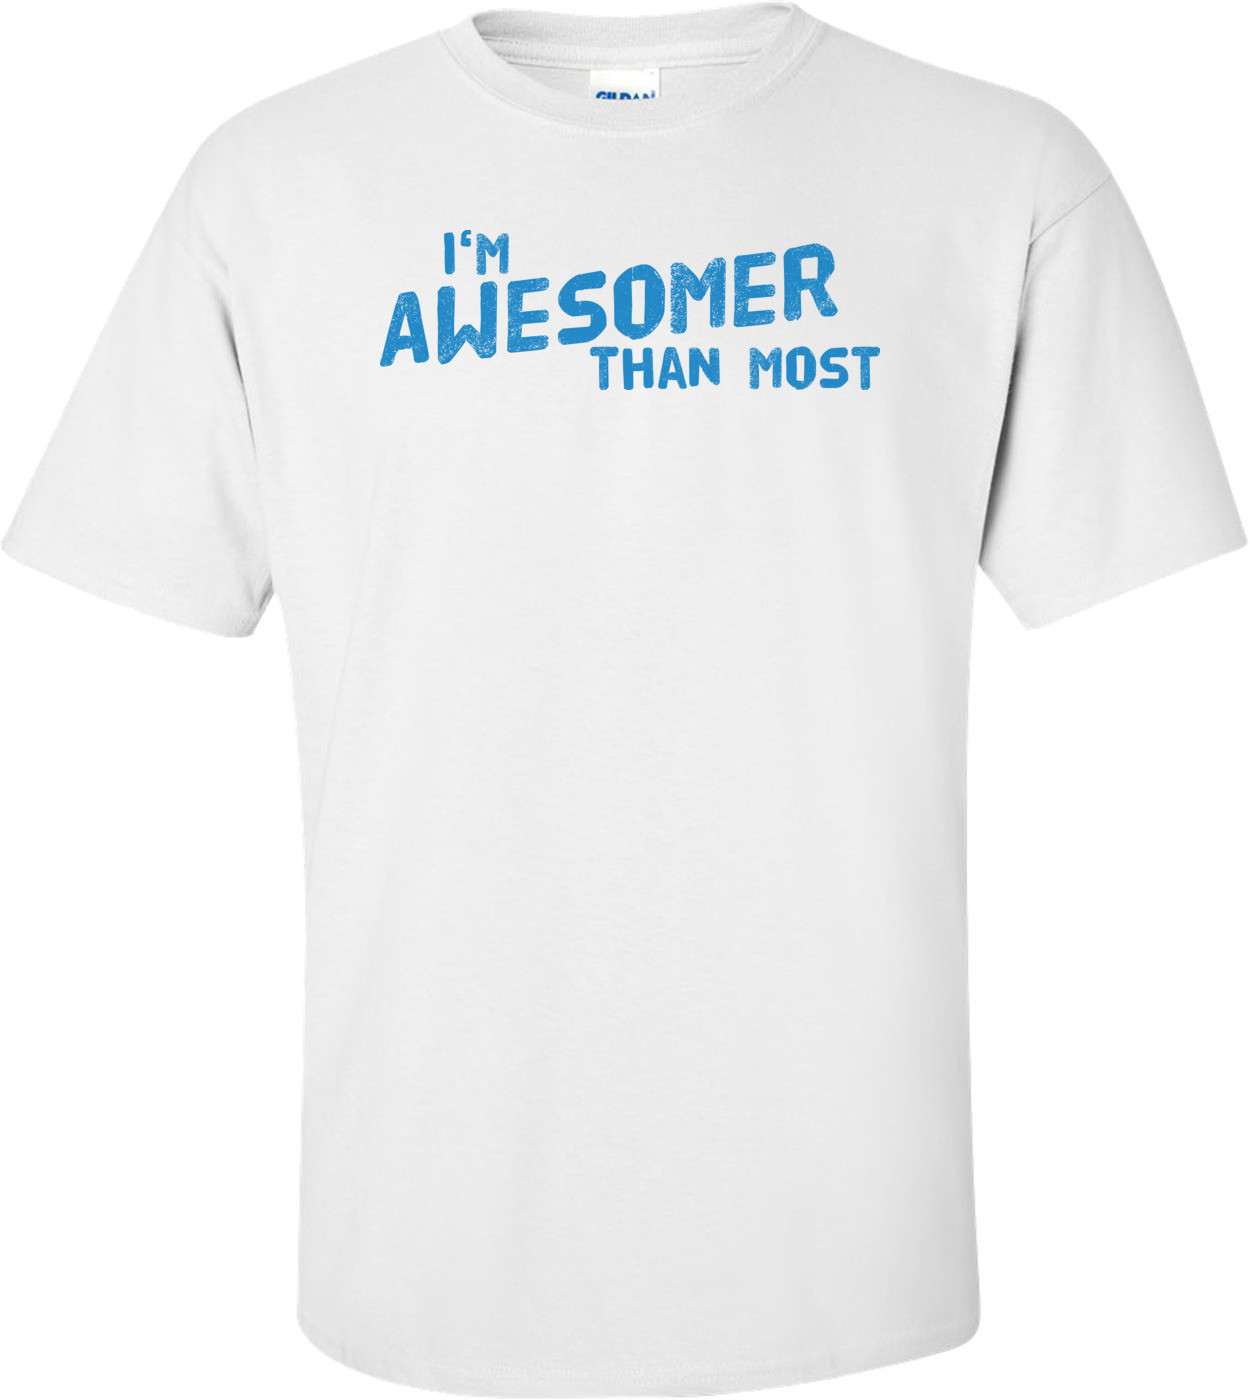 I'm Awesomer Than Most T-shirt